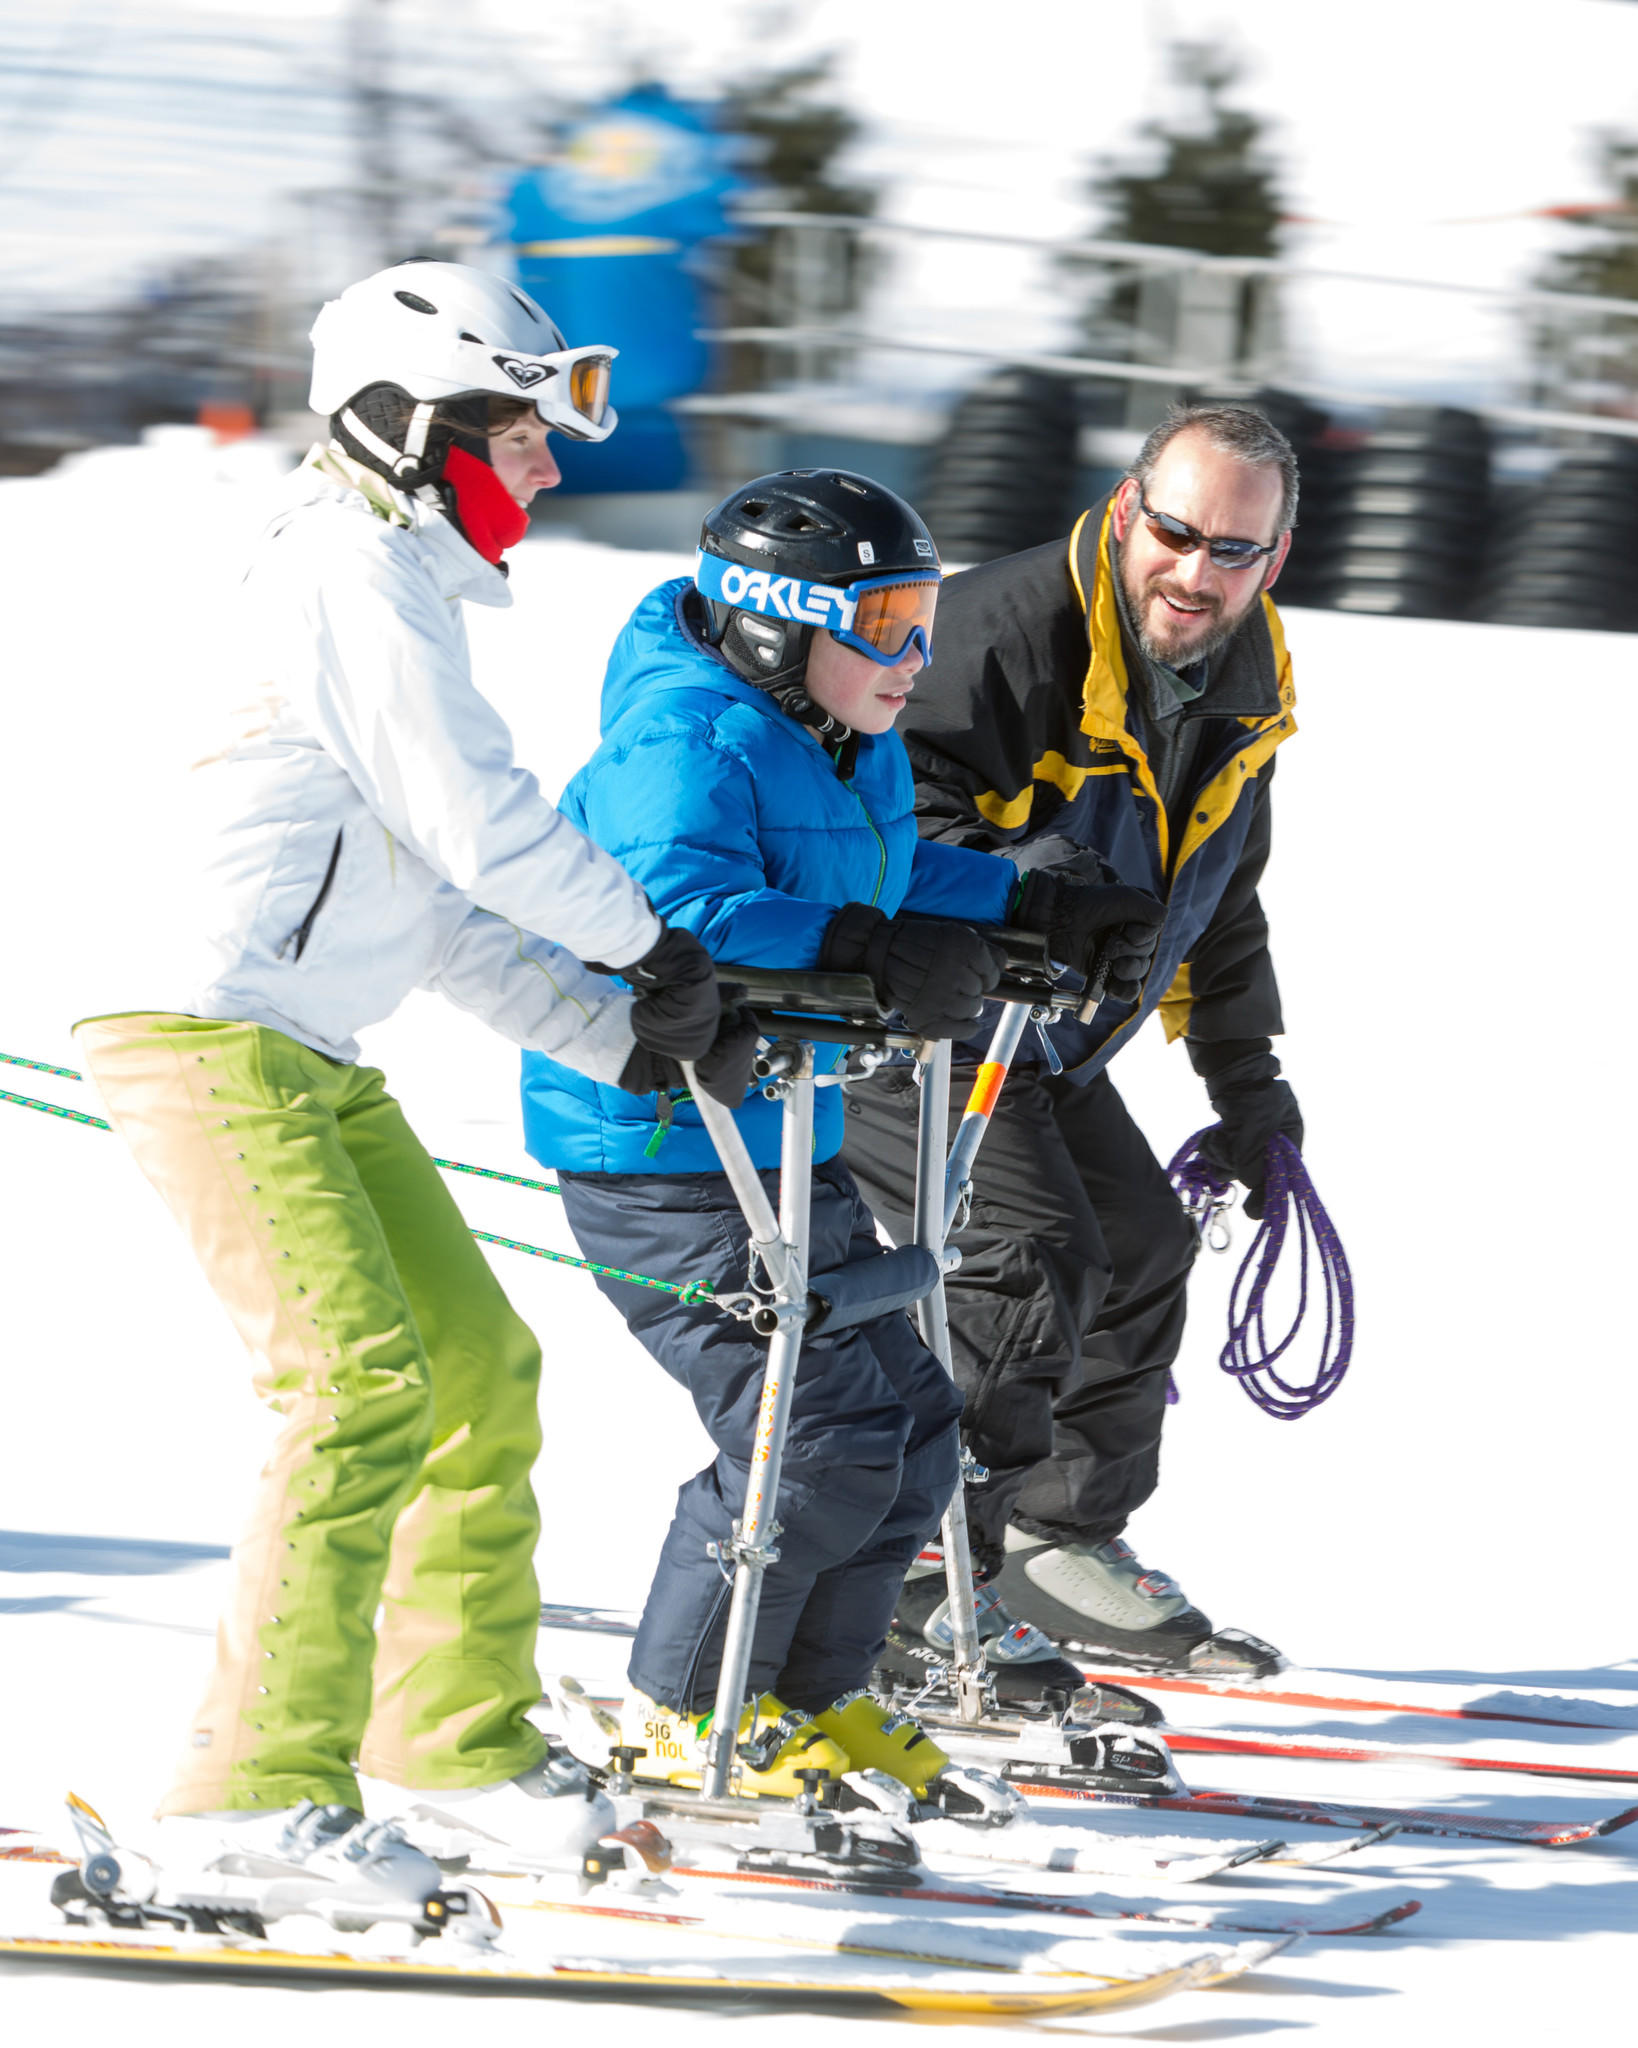 Quinnipiac University occupational therapy student Marta Parys of Oakland Gardens, N.Y. teaches Kyle Errato how to ski with the help of Kyle's father Frank at Mount Southington on Feb. 28.